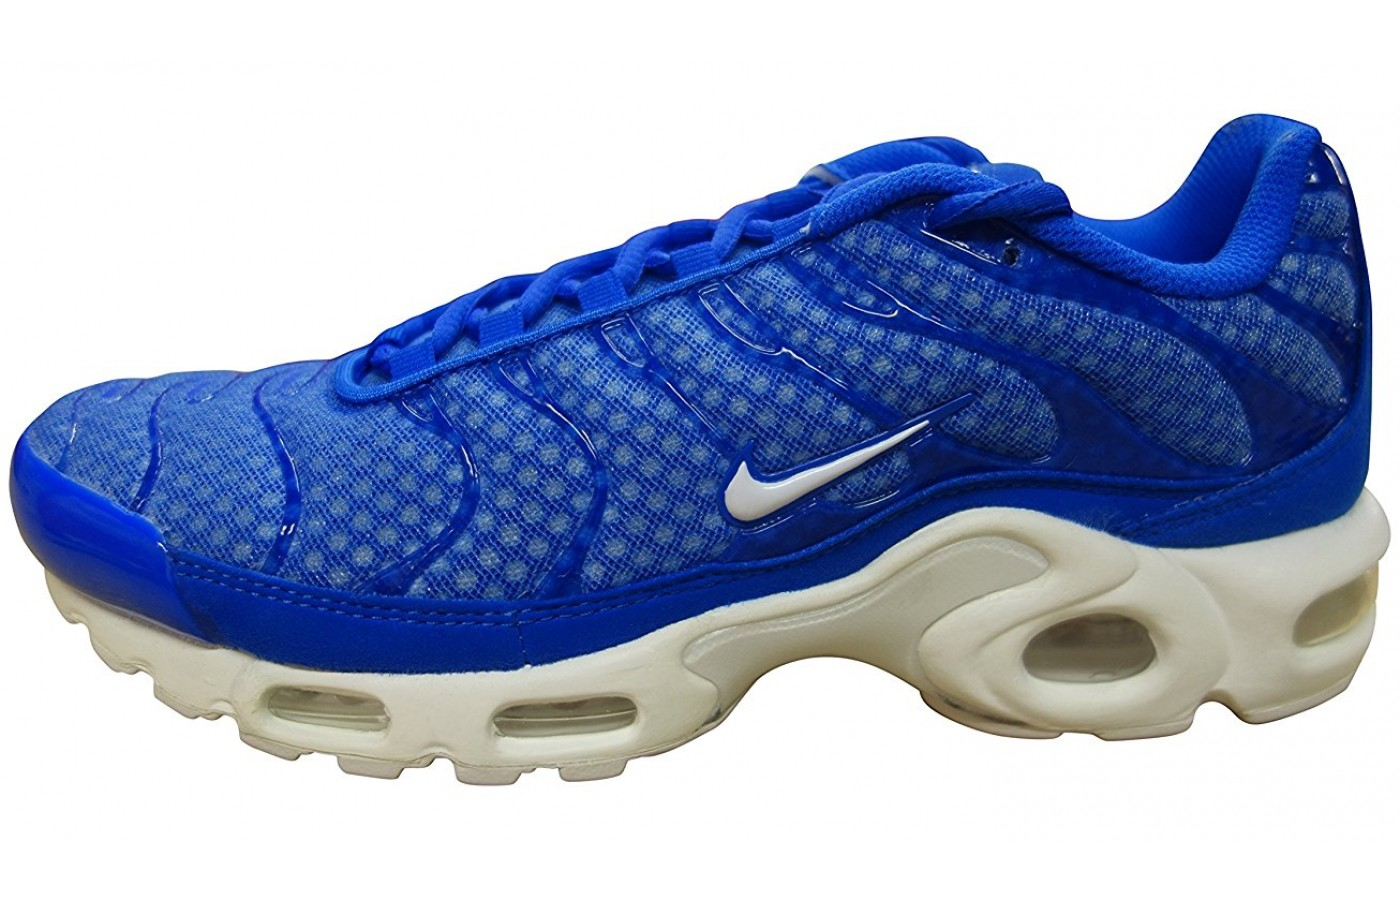 watch e2ae9 373d7 ... A side view of the Nike Air Max Plus shoe ...